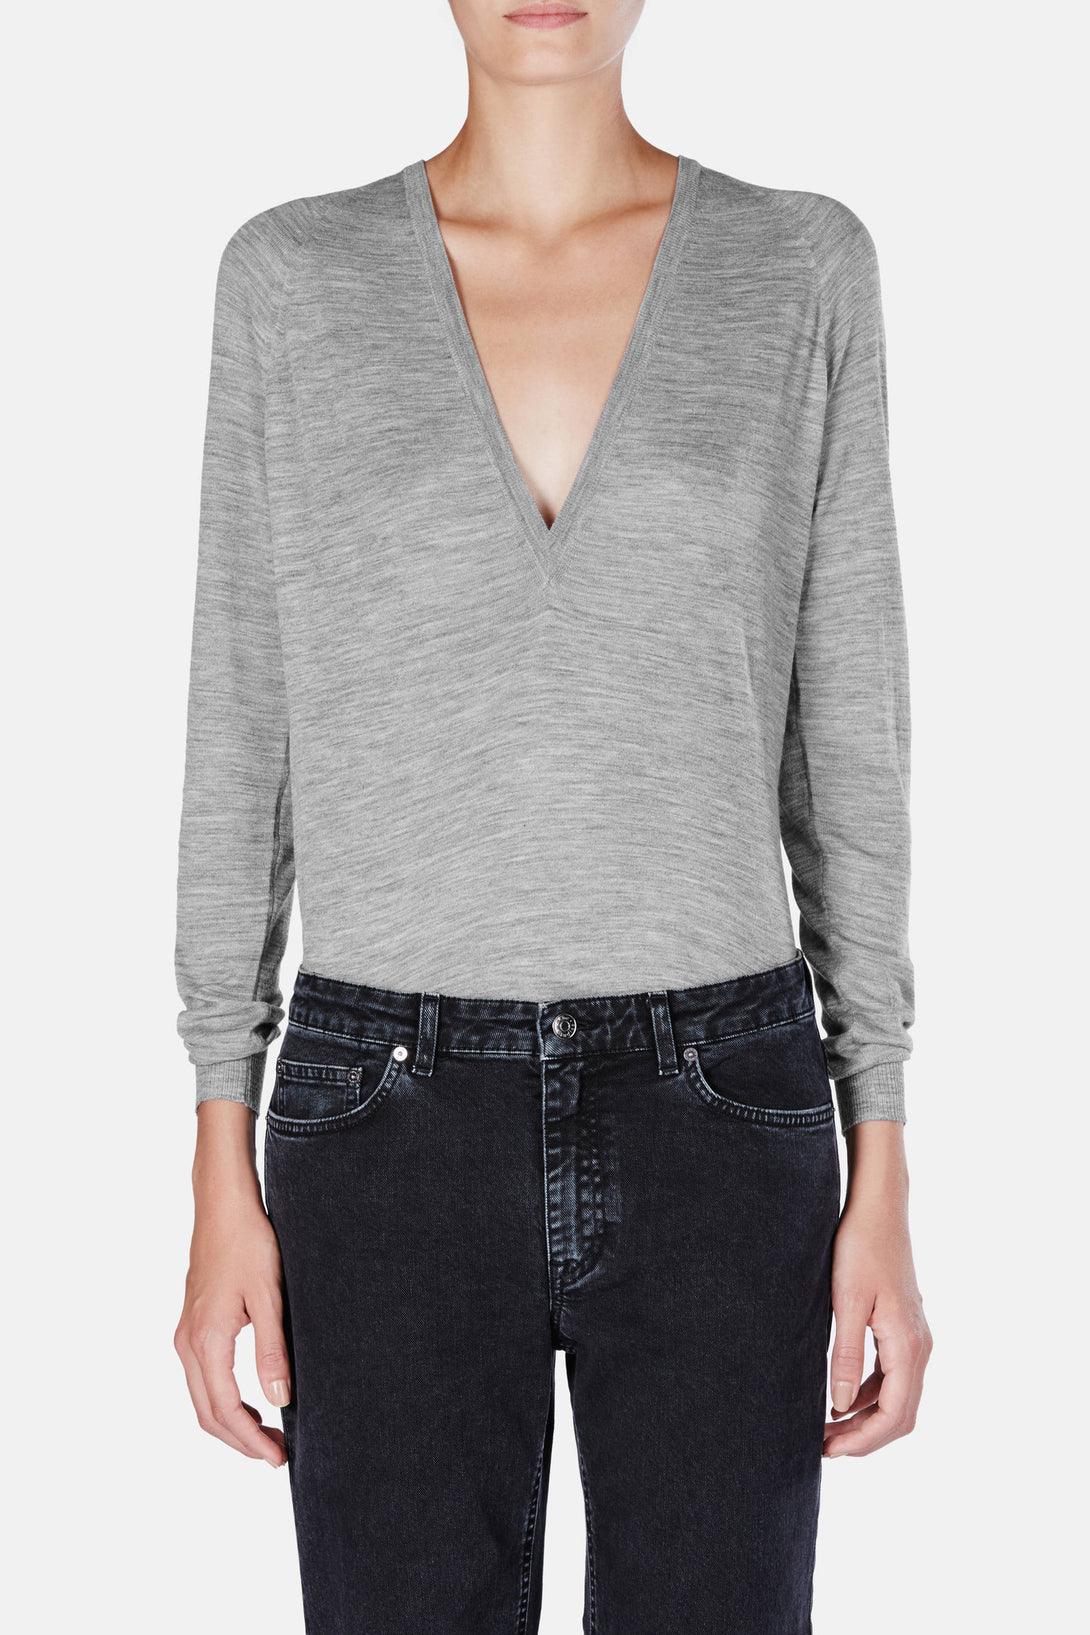 PS L/S Deep V - Medium Grey